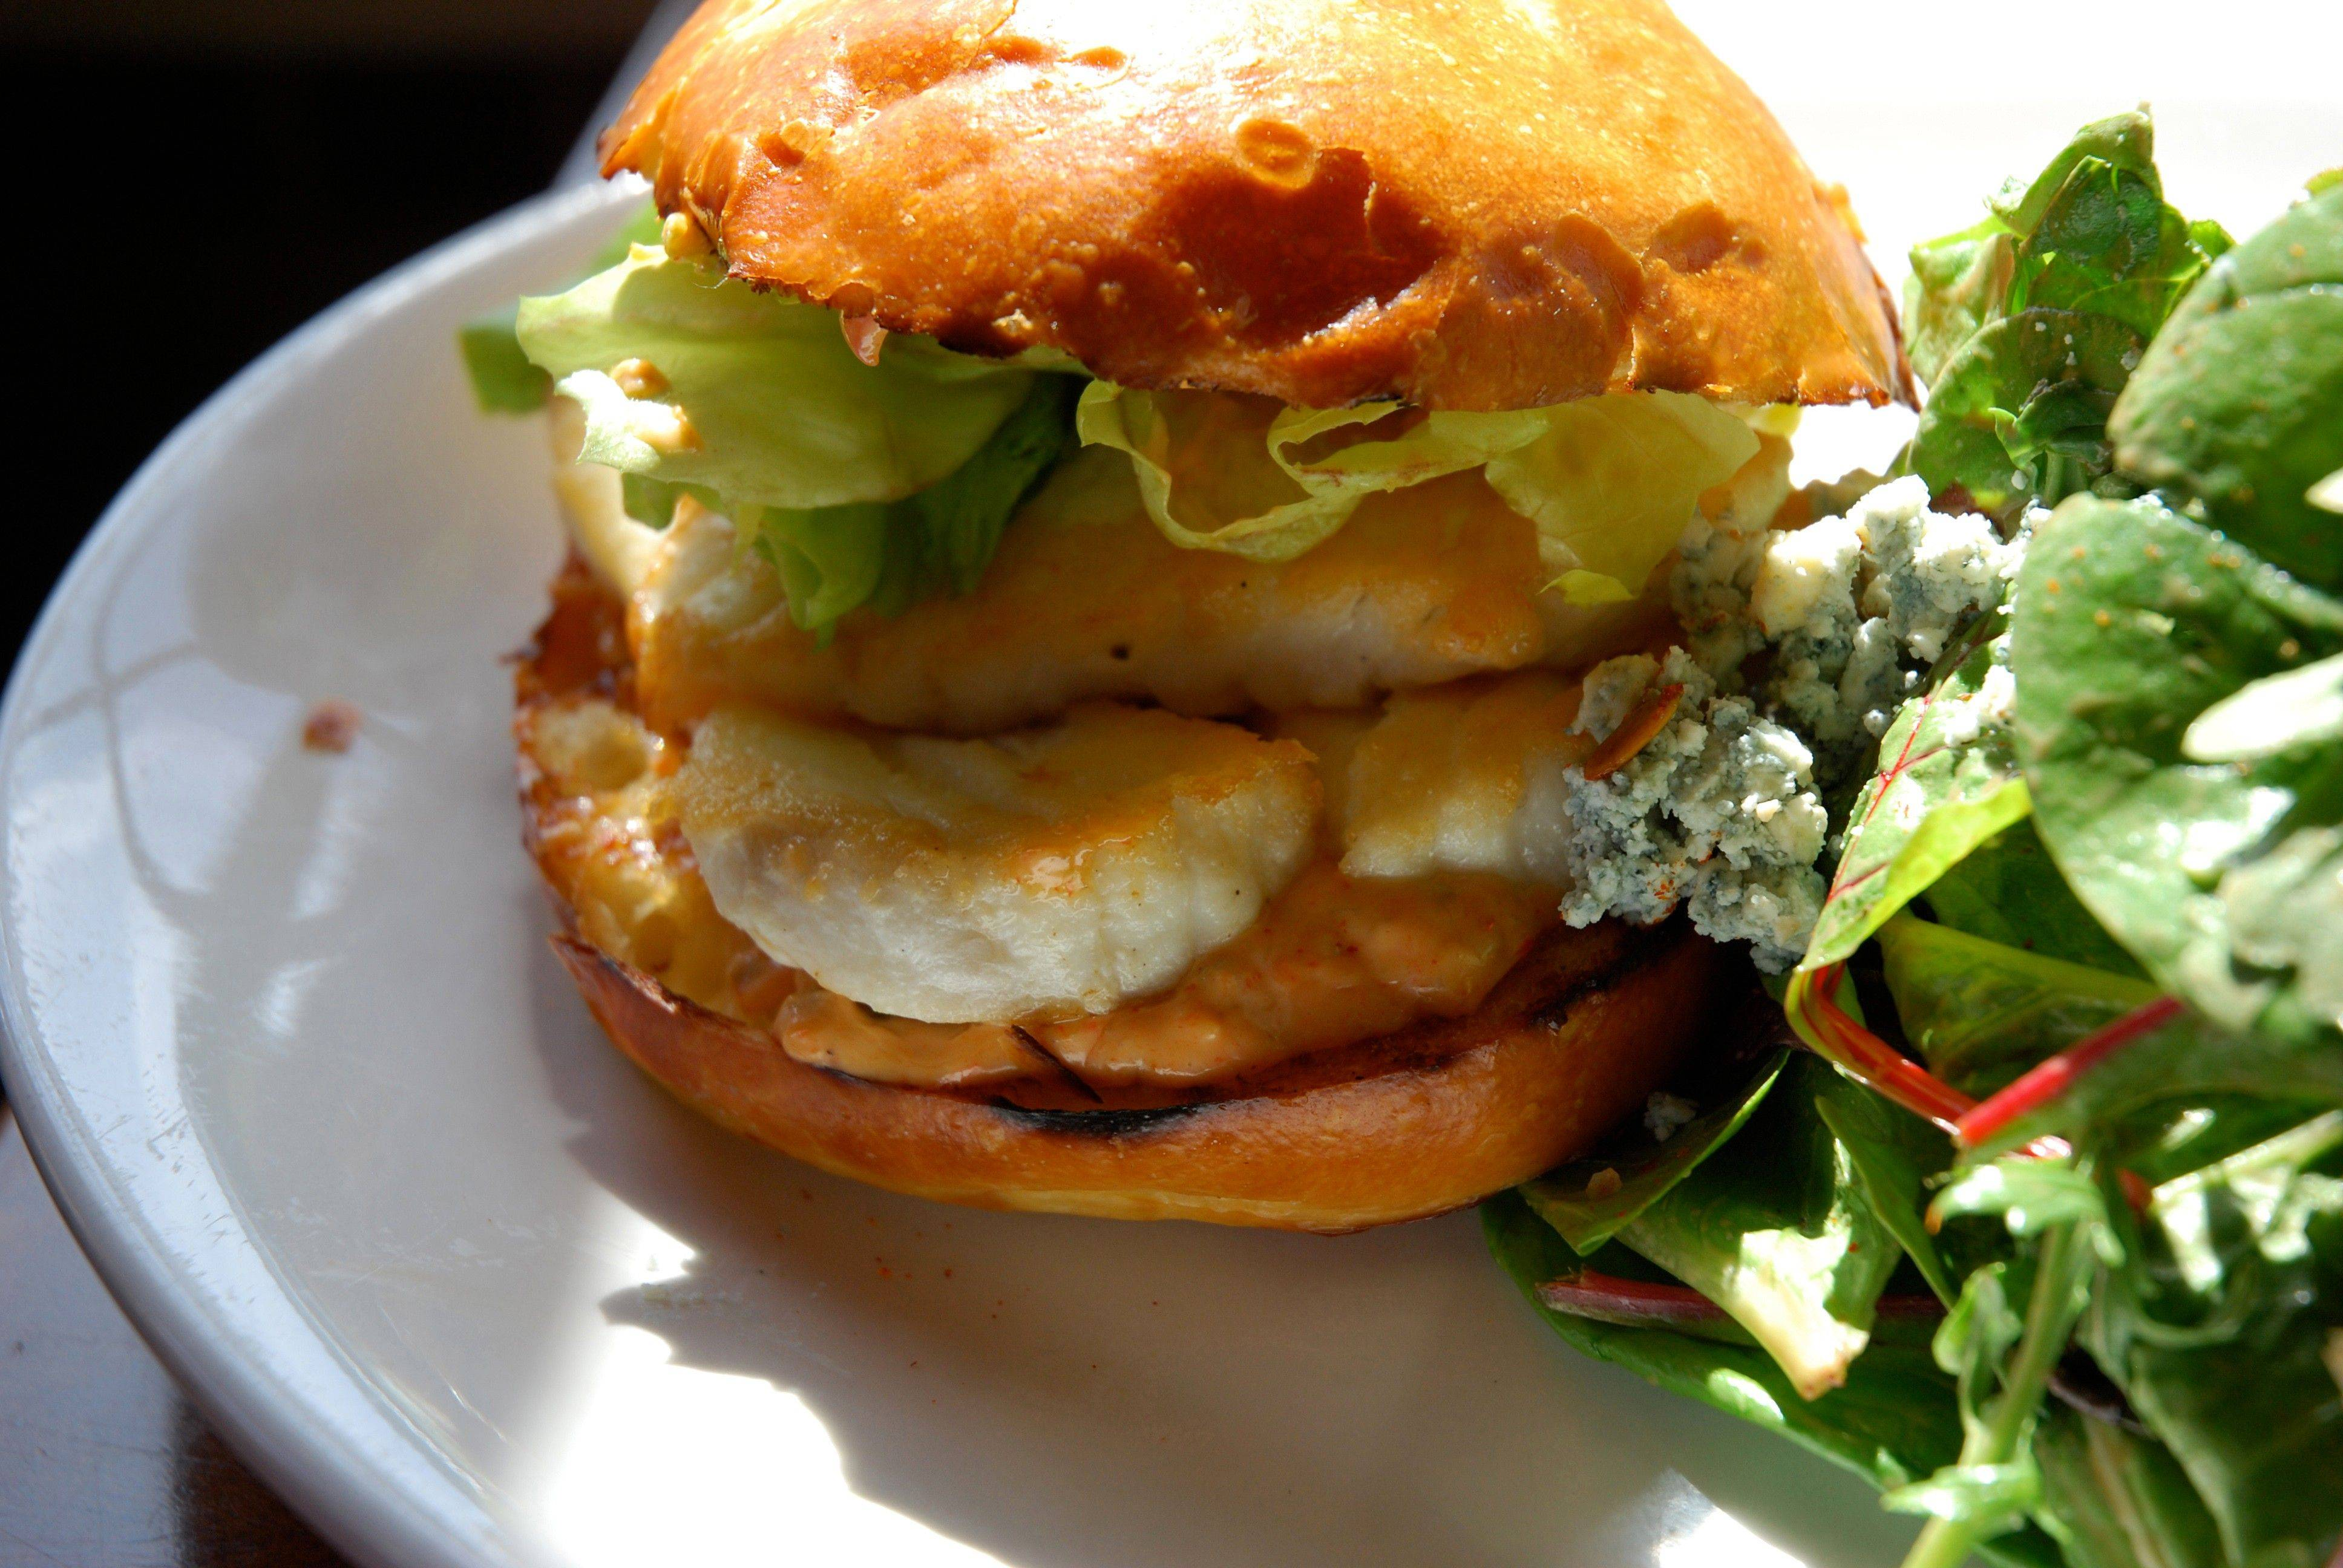 Forget frozen patties. Fresh fillets bring fish sandwiches into modern times.